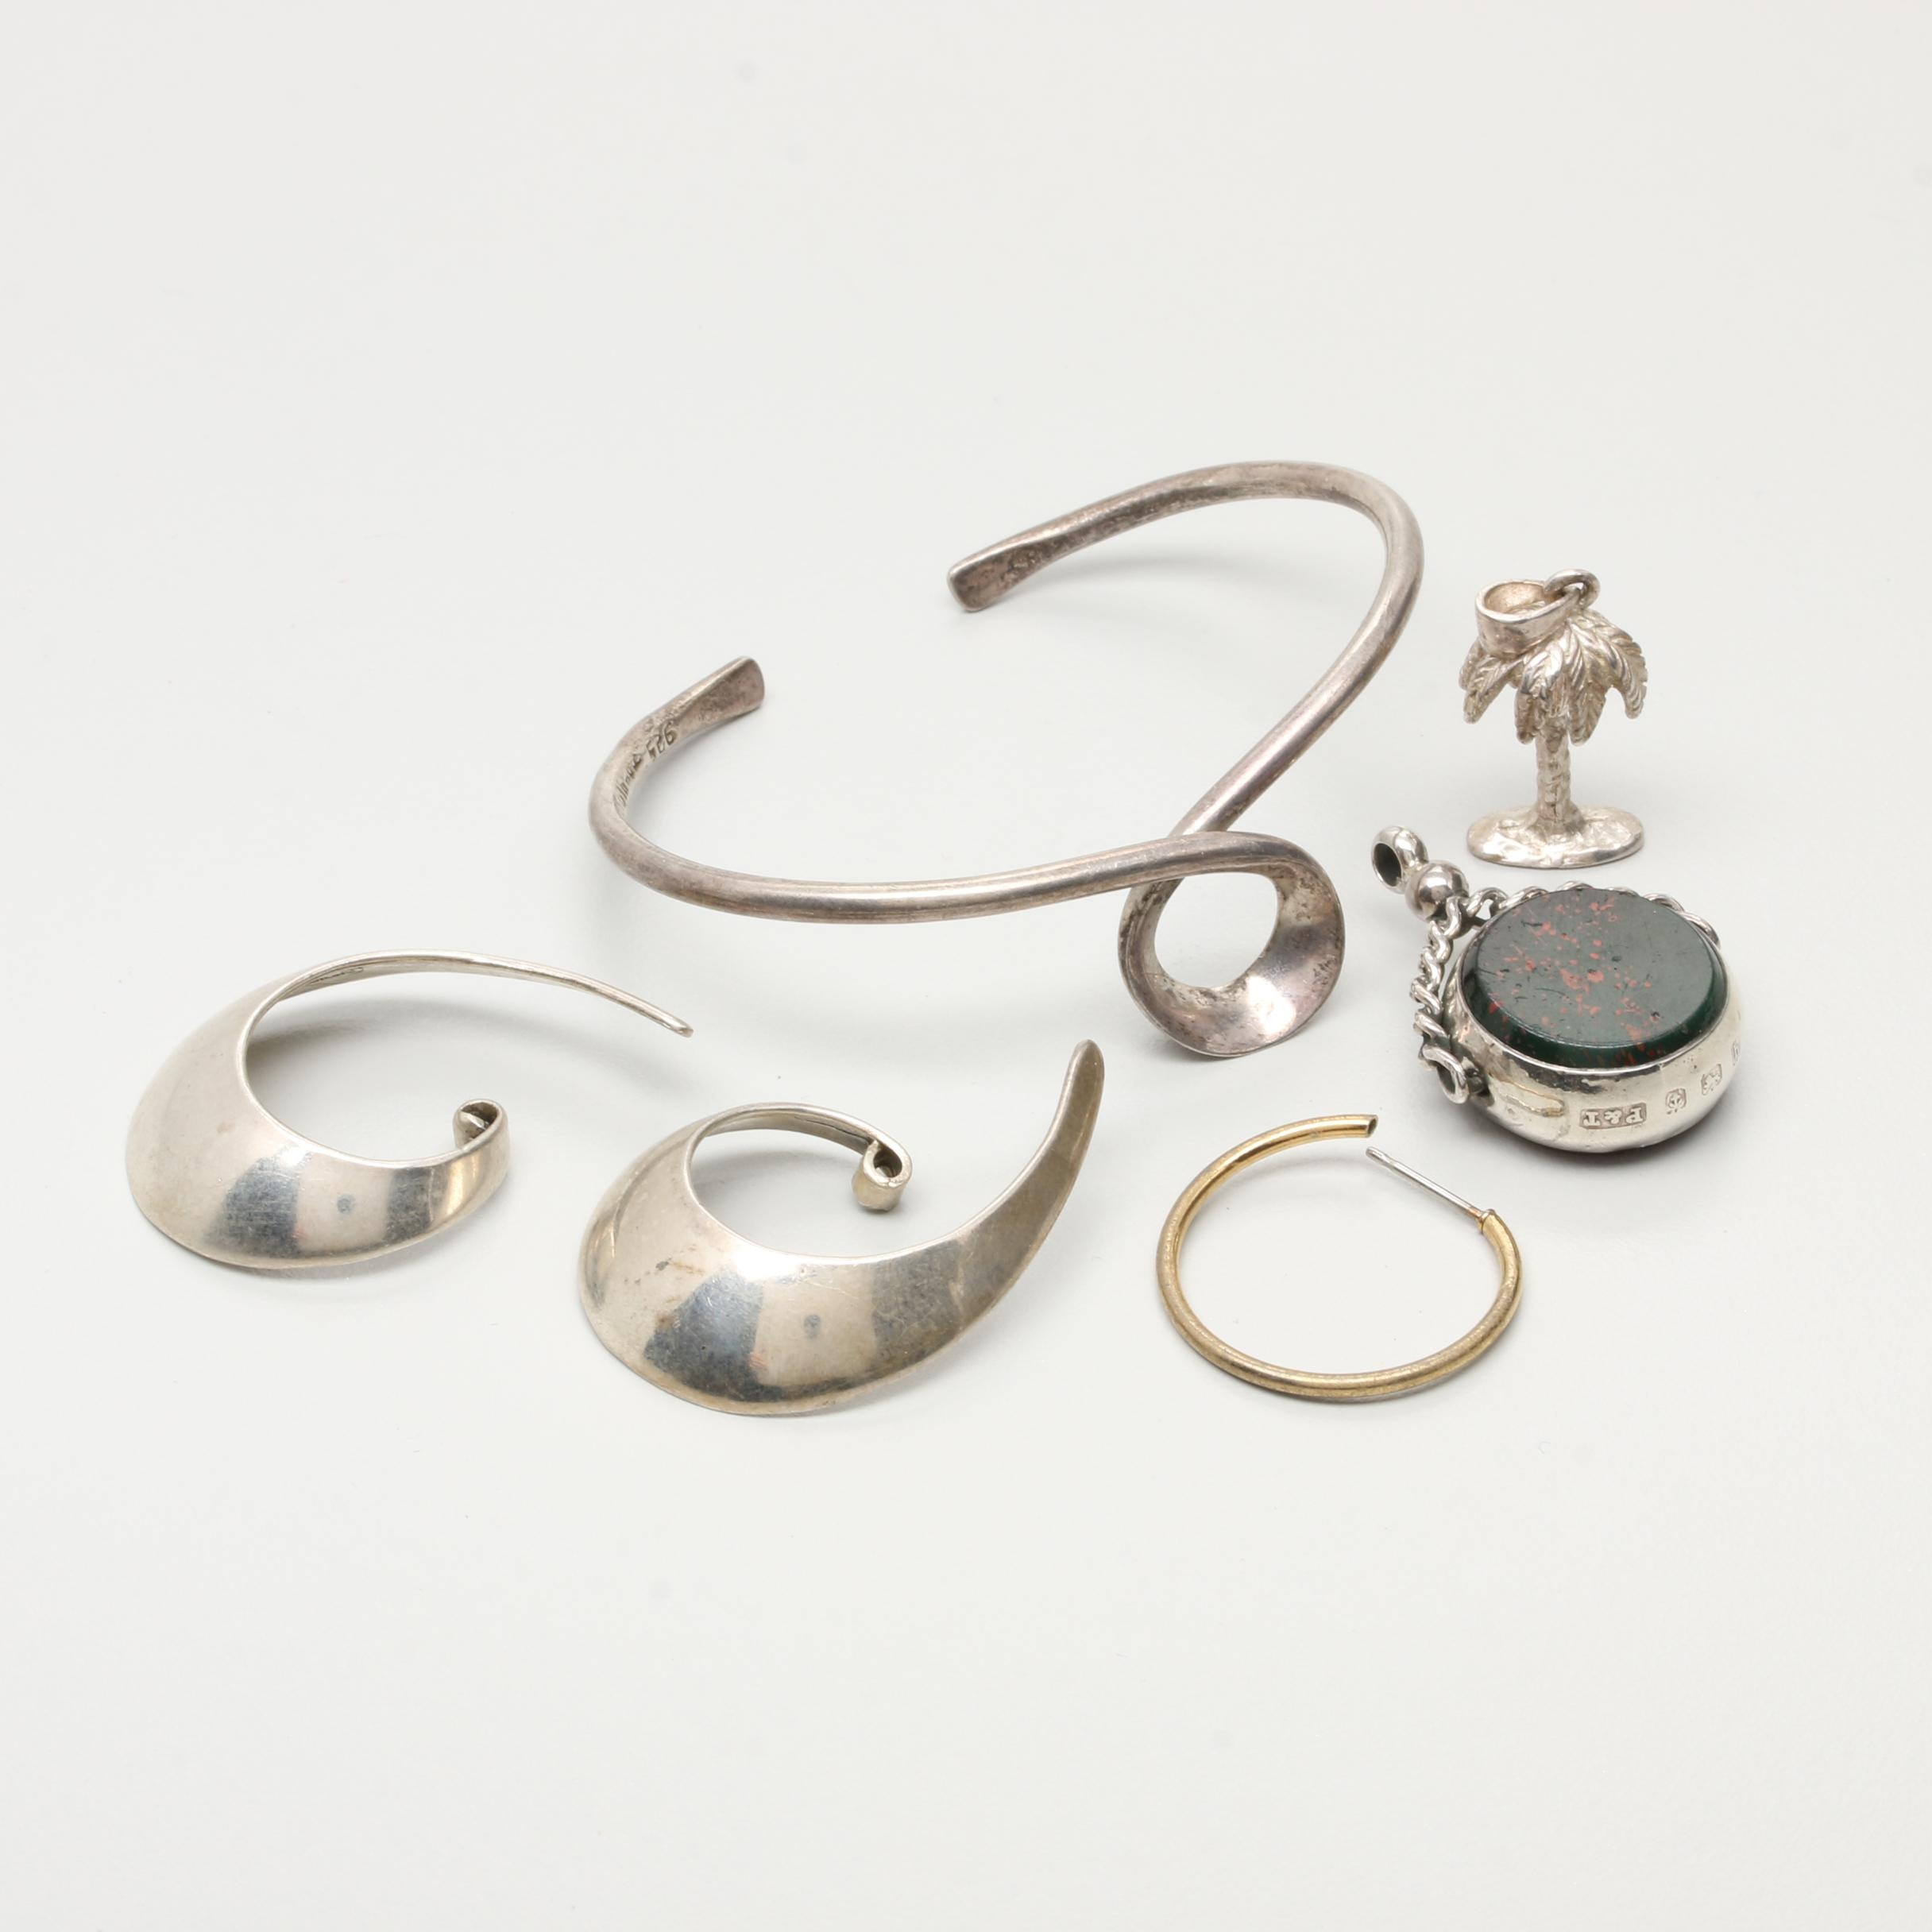 Sterling Silver Jewelry Including Earring Jackets and Watch Fob